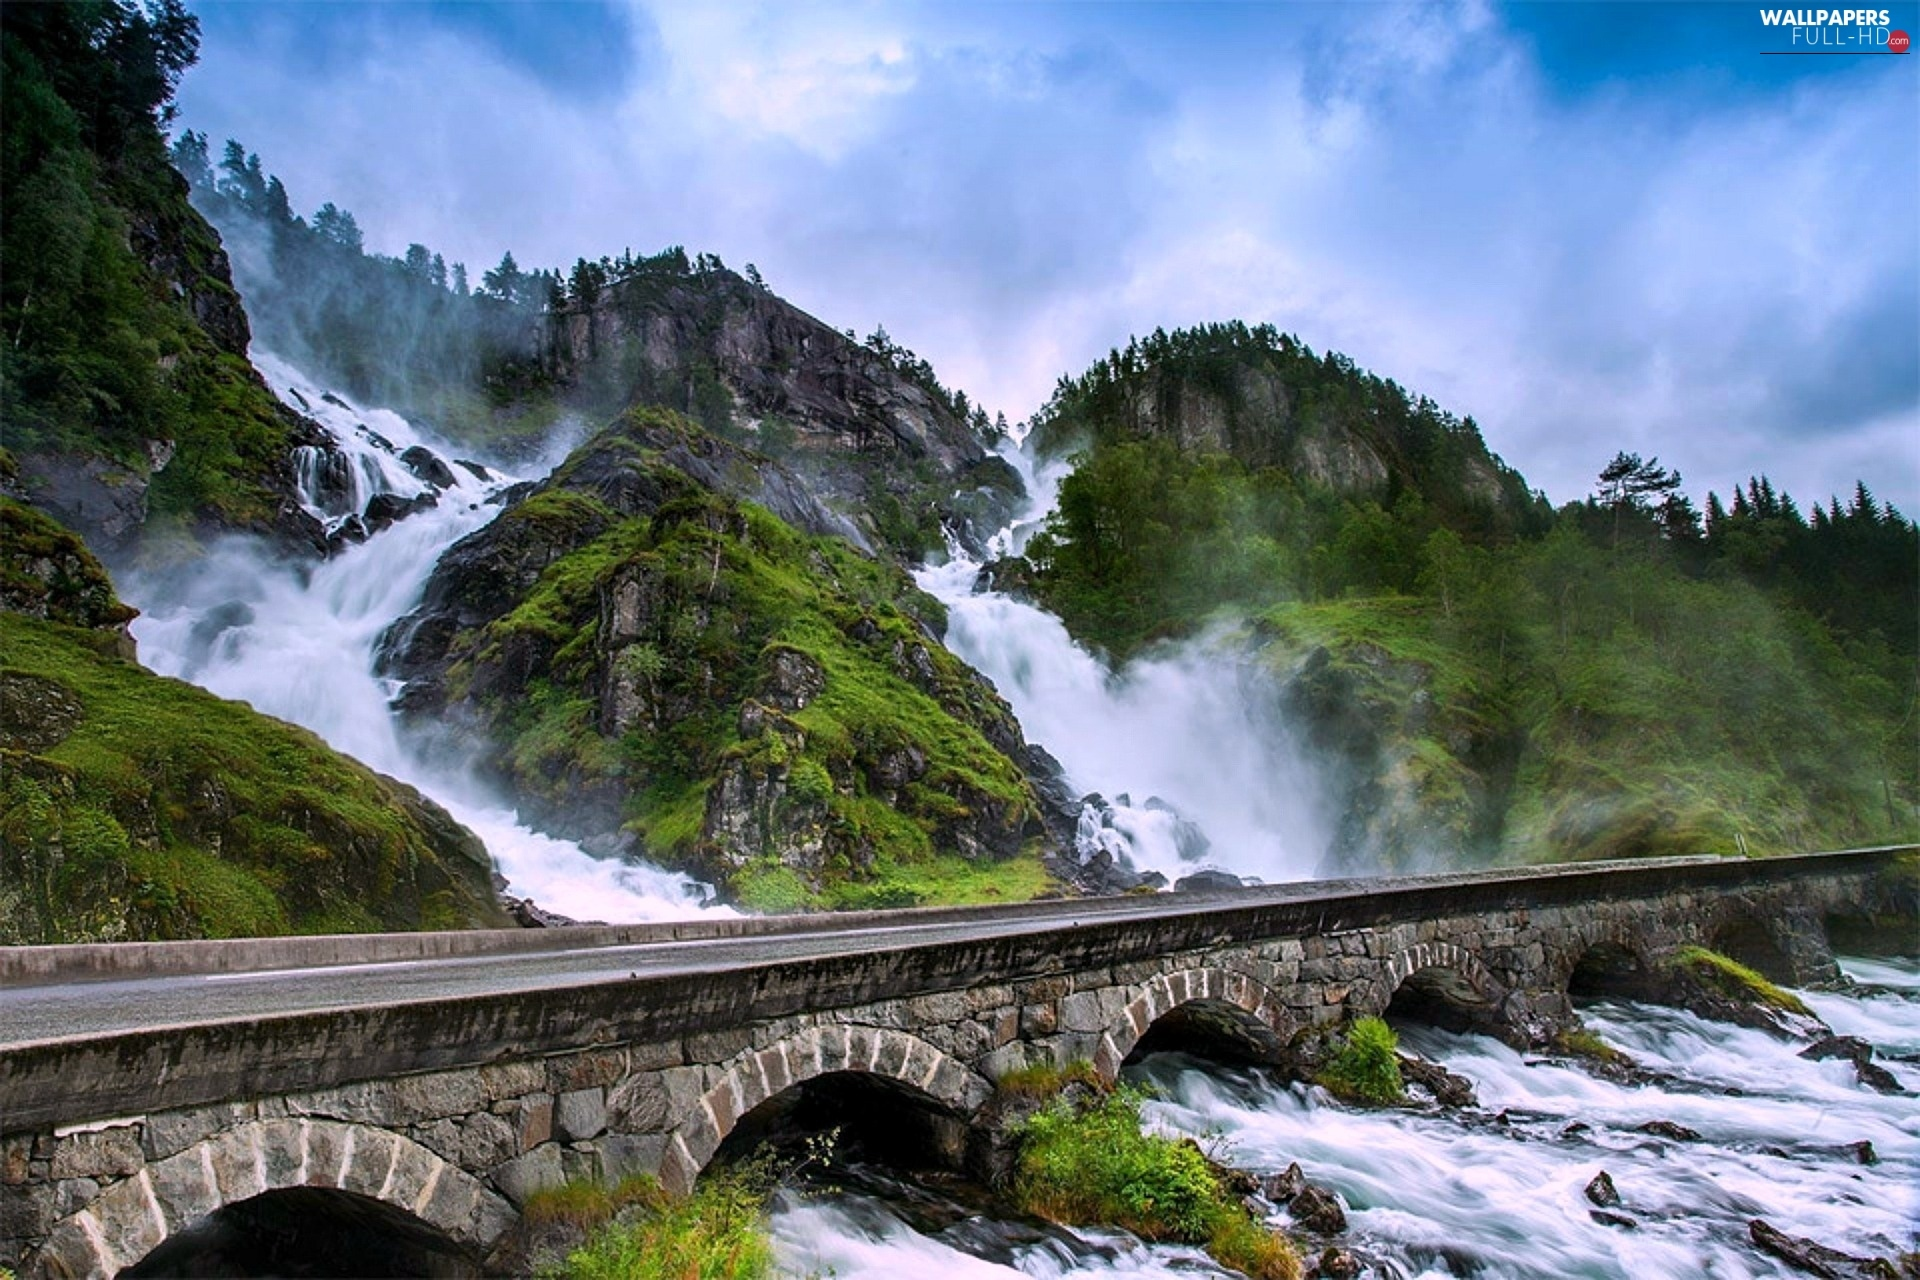 Way, Latefossen, River, Norway, bridge, waterfall